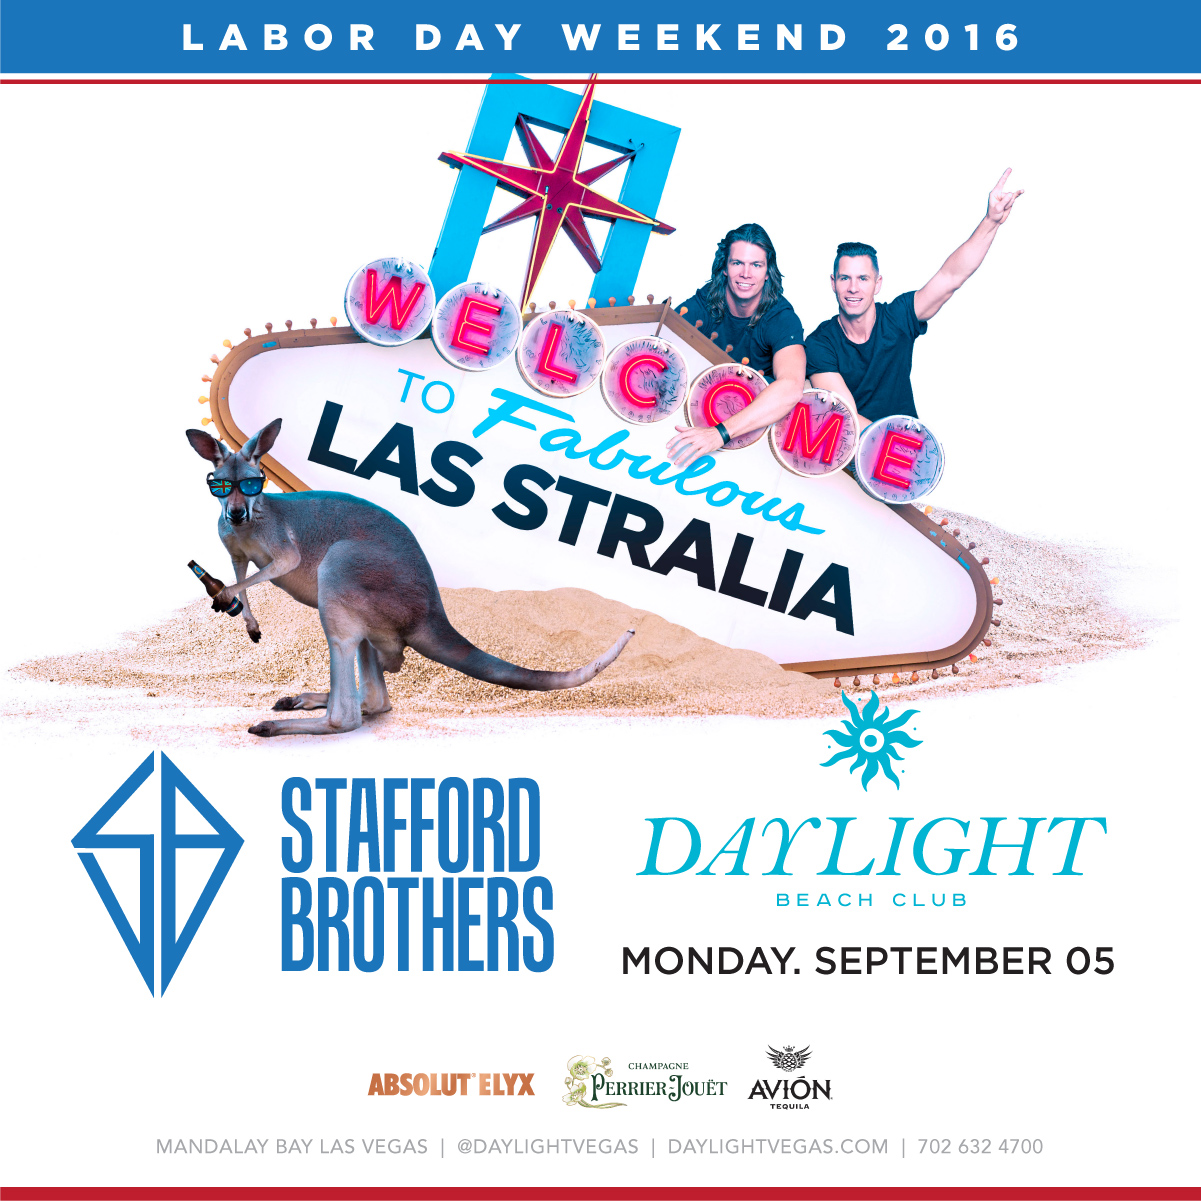 stafford brothers labor day weekend at daylight beach club on monday september 5 galavantier. Black Bedroom Furniture Sets. Home Design Ideas